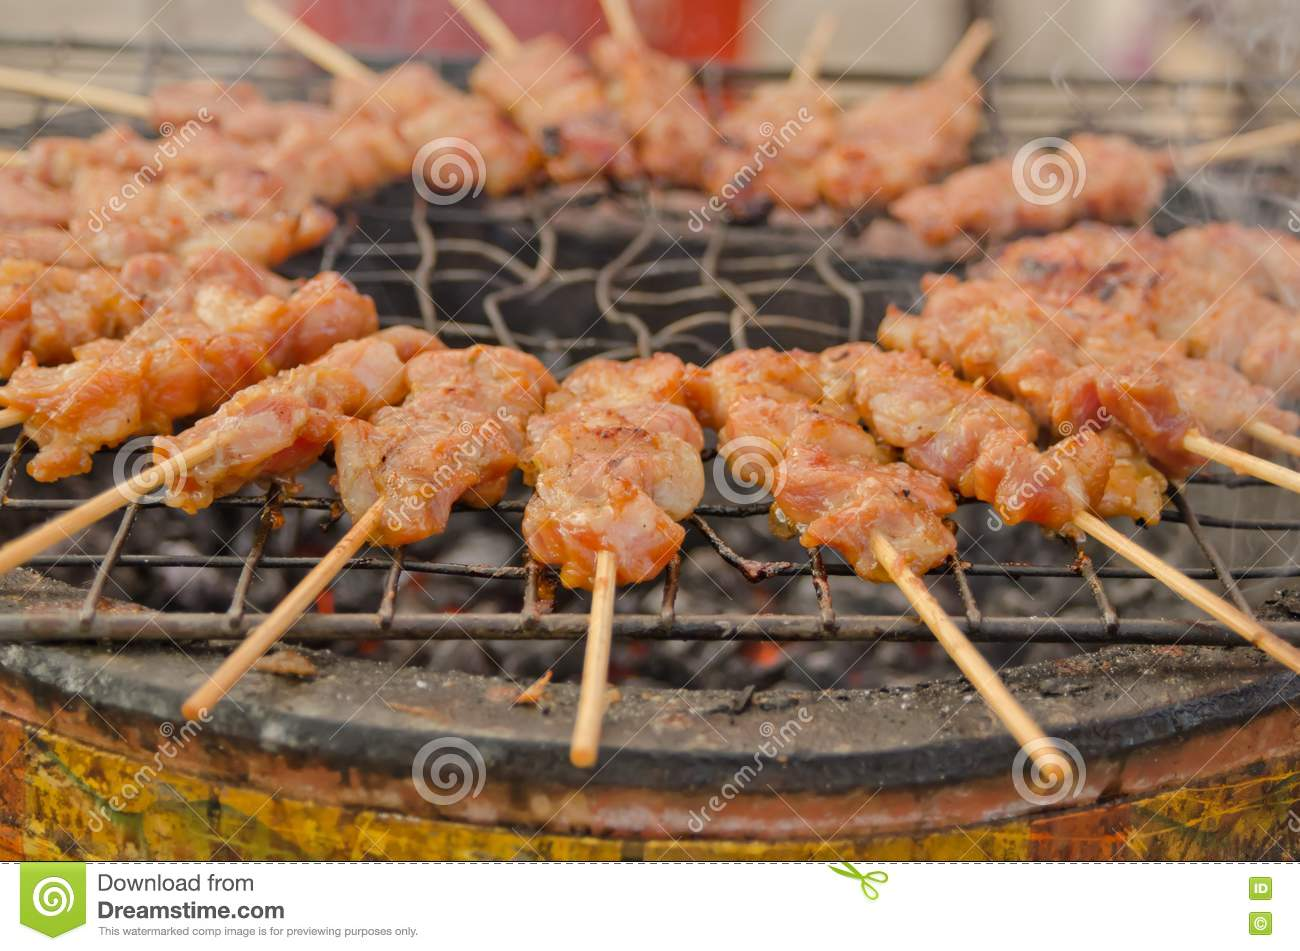 Grilled Pork At Thai Market Stock Photos - Image: 21478883